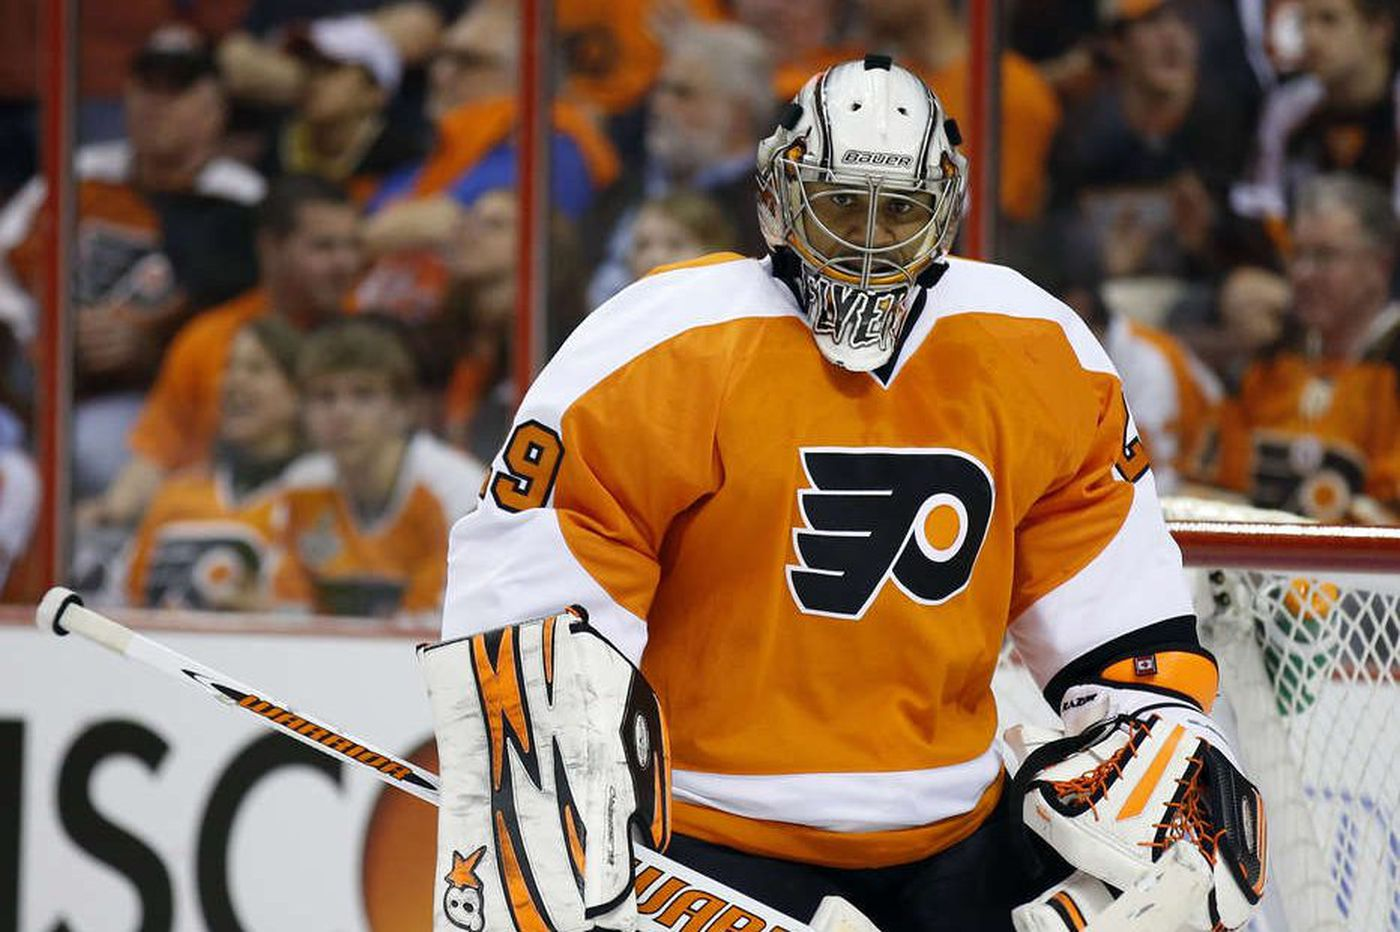 Ray Emery, former Flyers goalie, drowns in Ontario